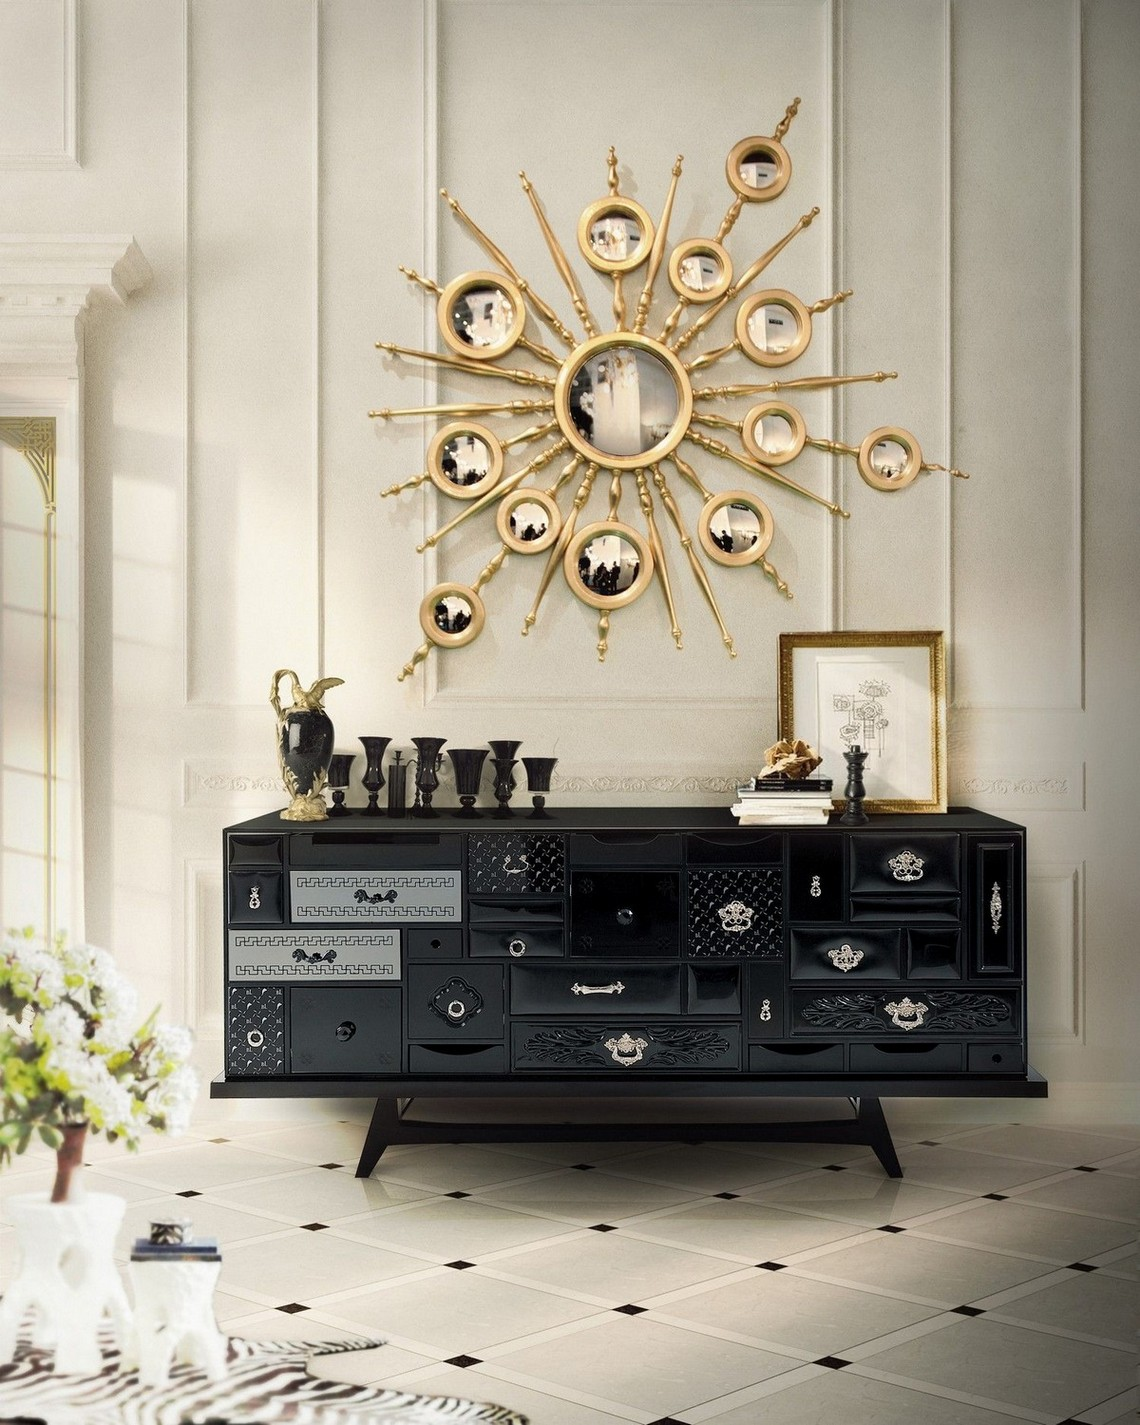 Modern Mirrors To Match Your Sideboard (Part II)